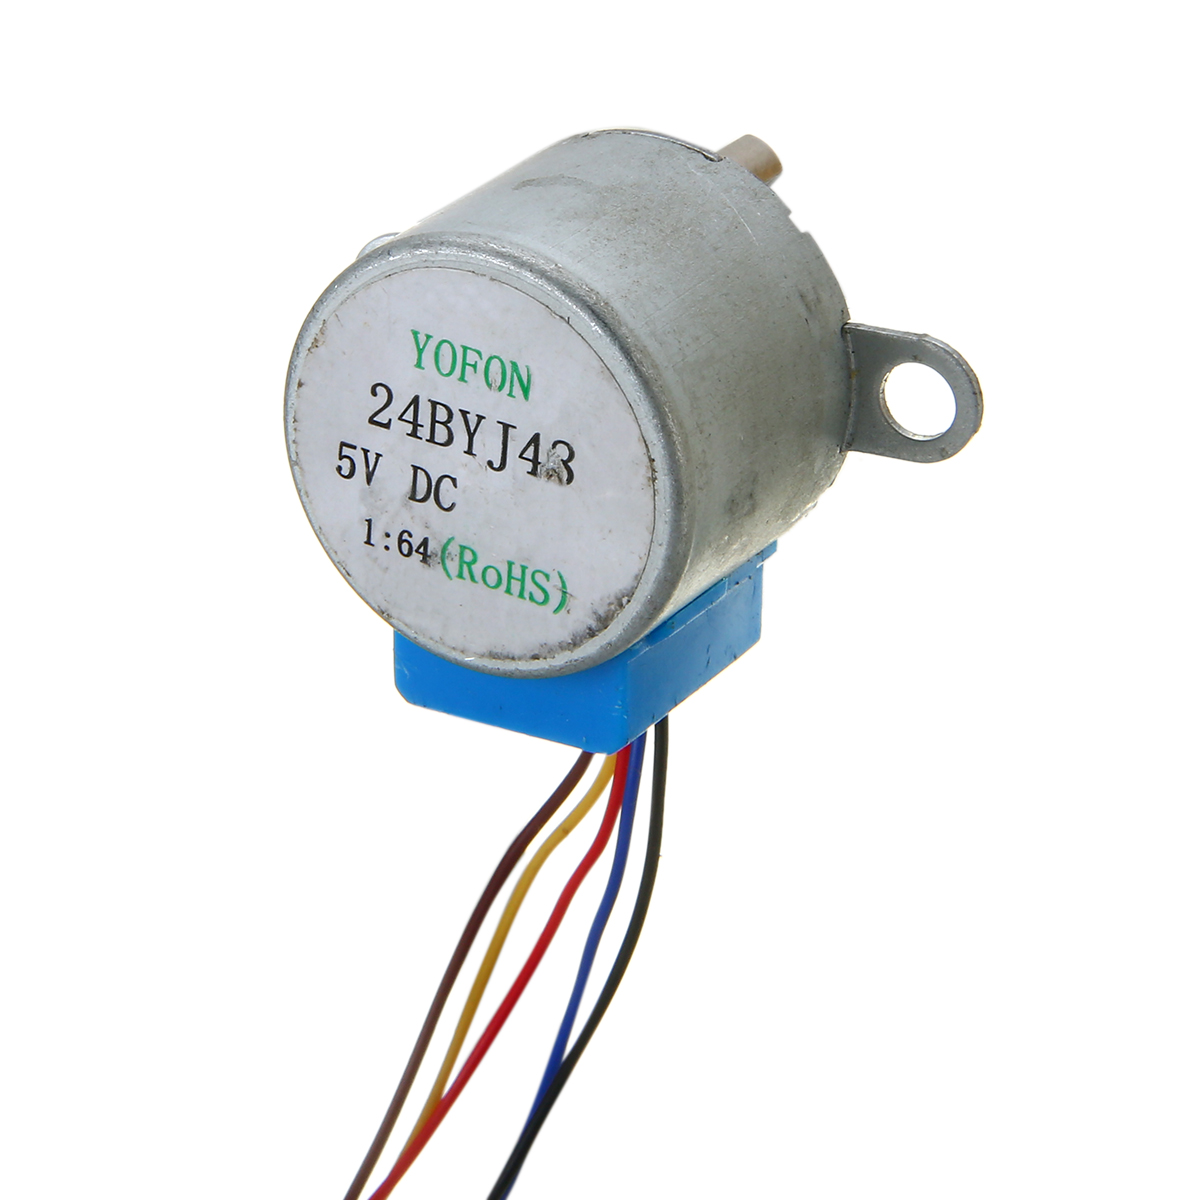 New 24BYJ48 DC5V Gear Stepper Motor 4-Phase 5-Wire Micro Reduction Step Motor For Arduino DIY Kit High Quality